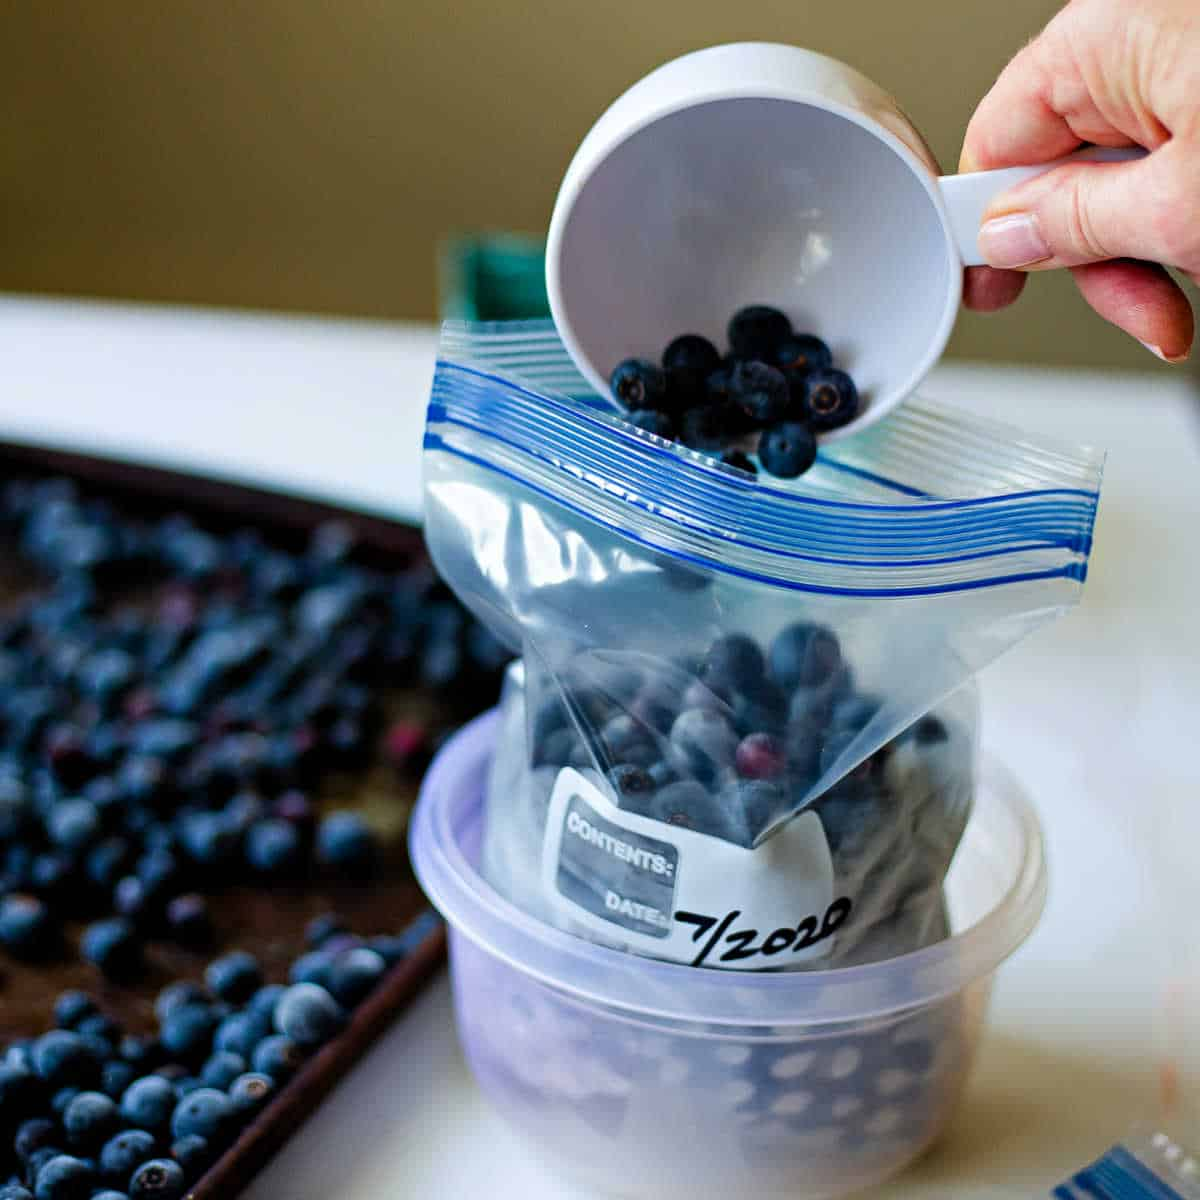 pouring blueberries into a freezer bag